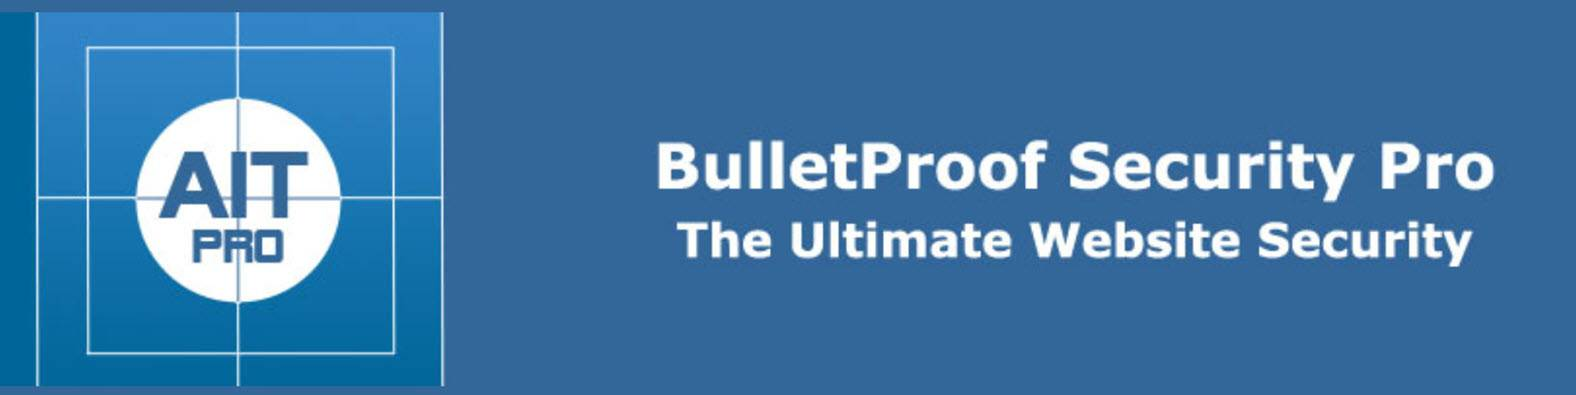 best wordpress security plugins Bulletproof